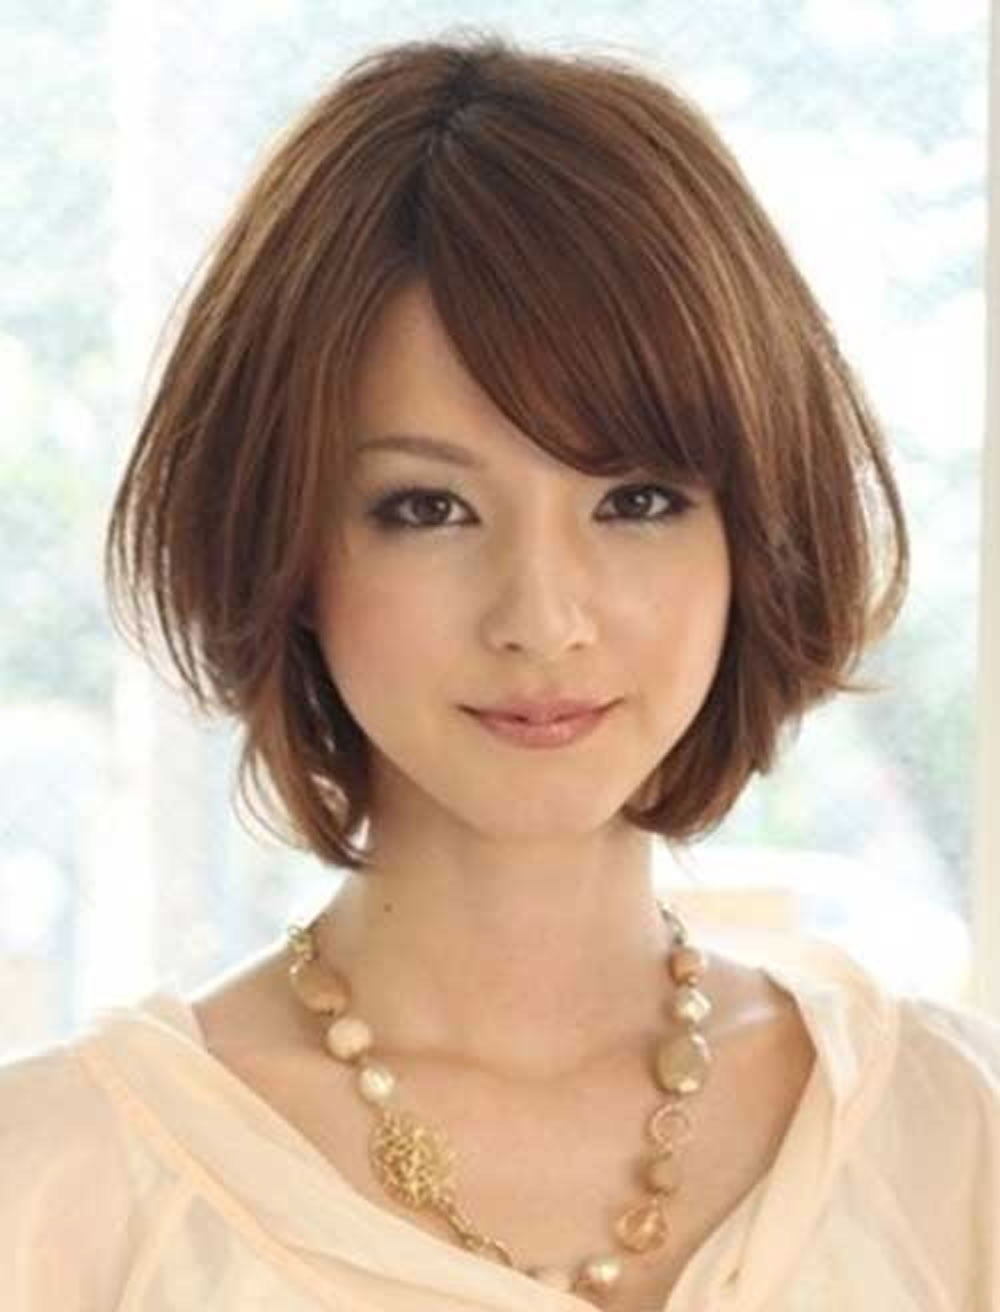 korean haircuts 2014 haircuts models ideas